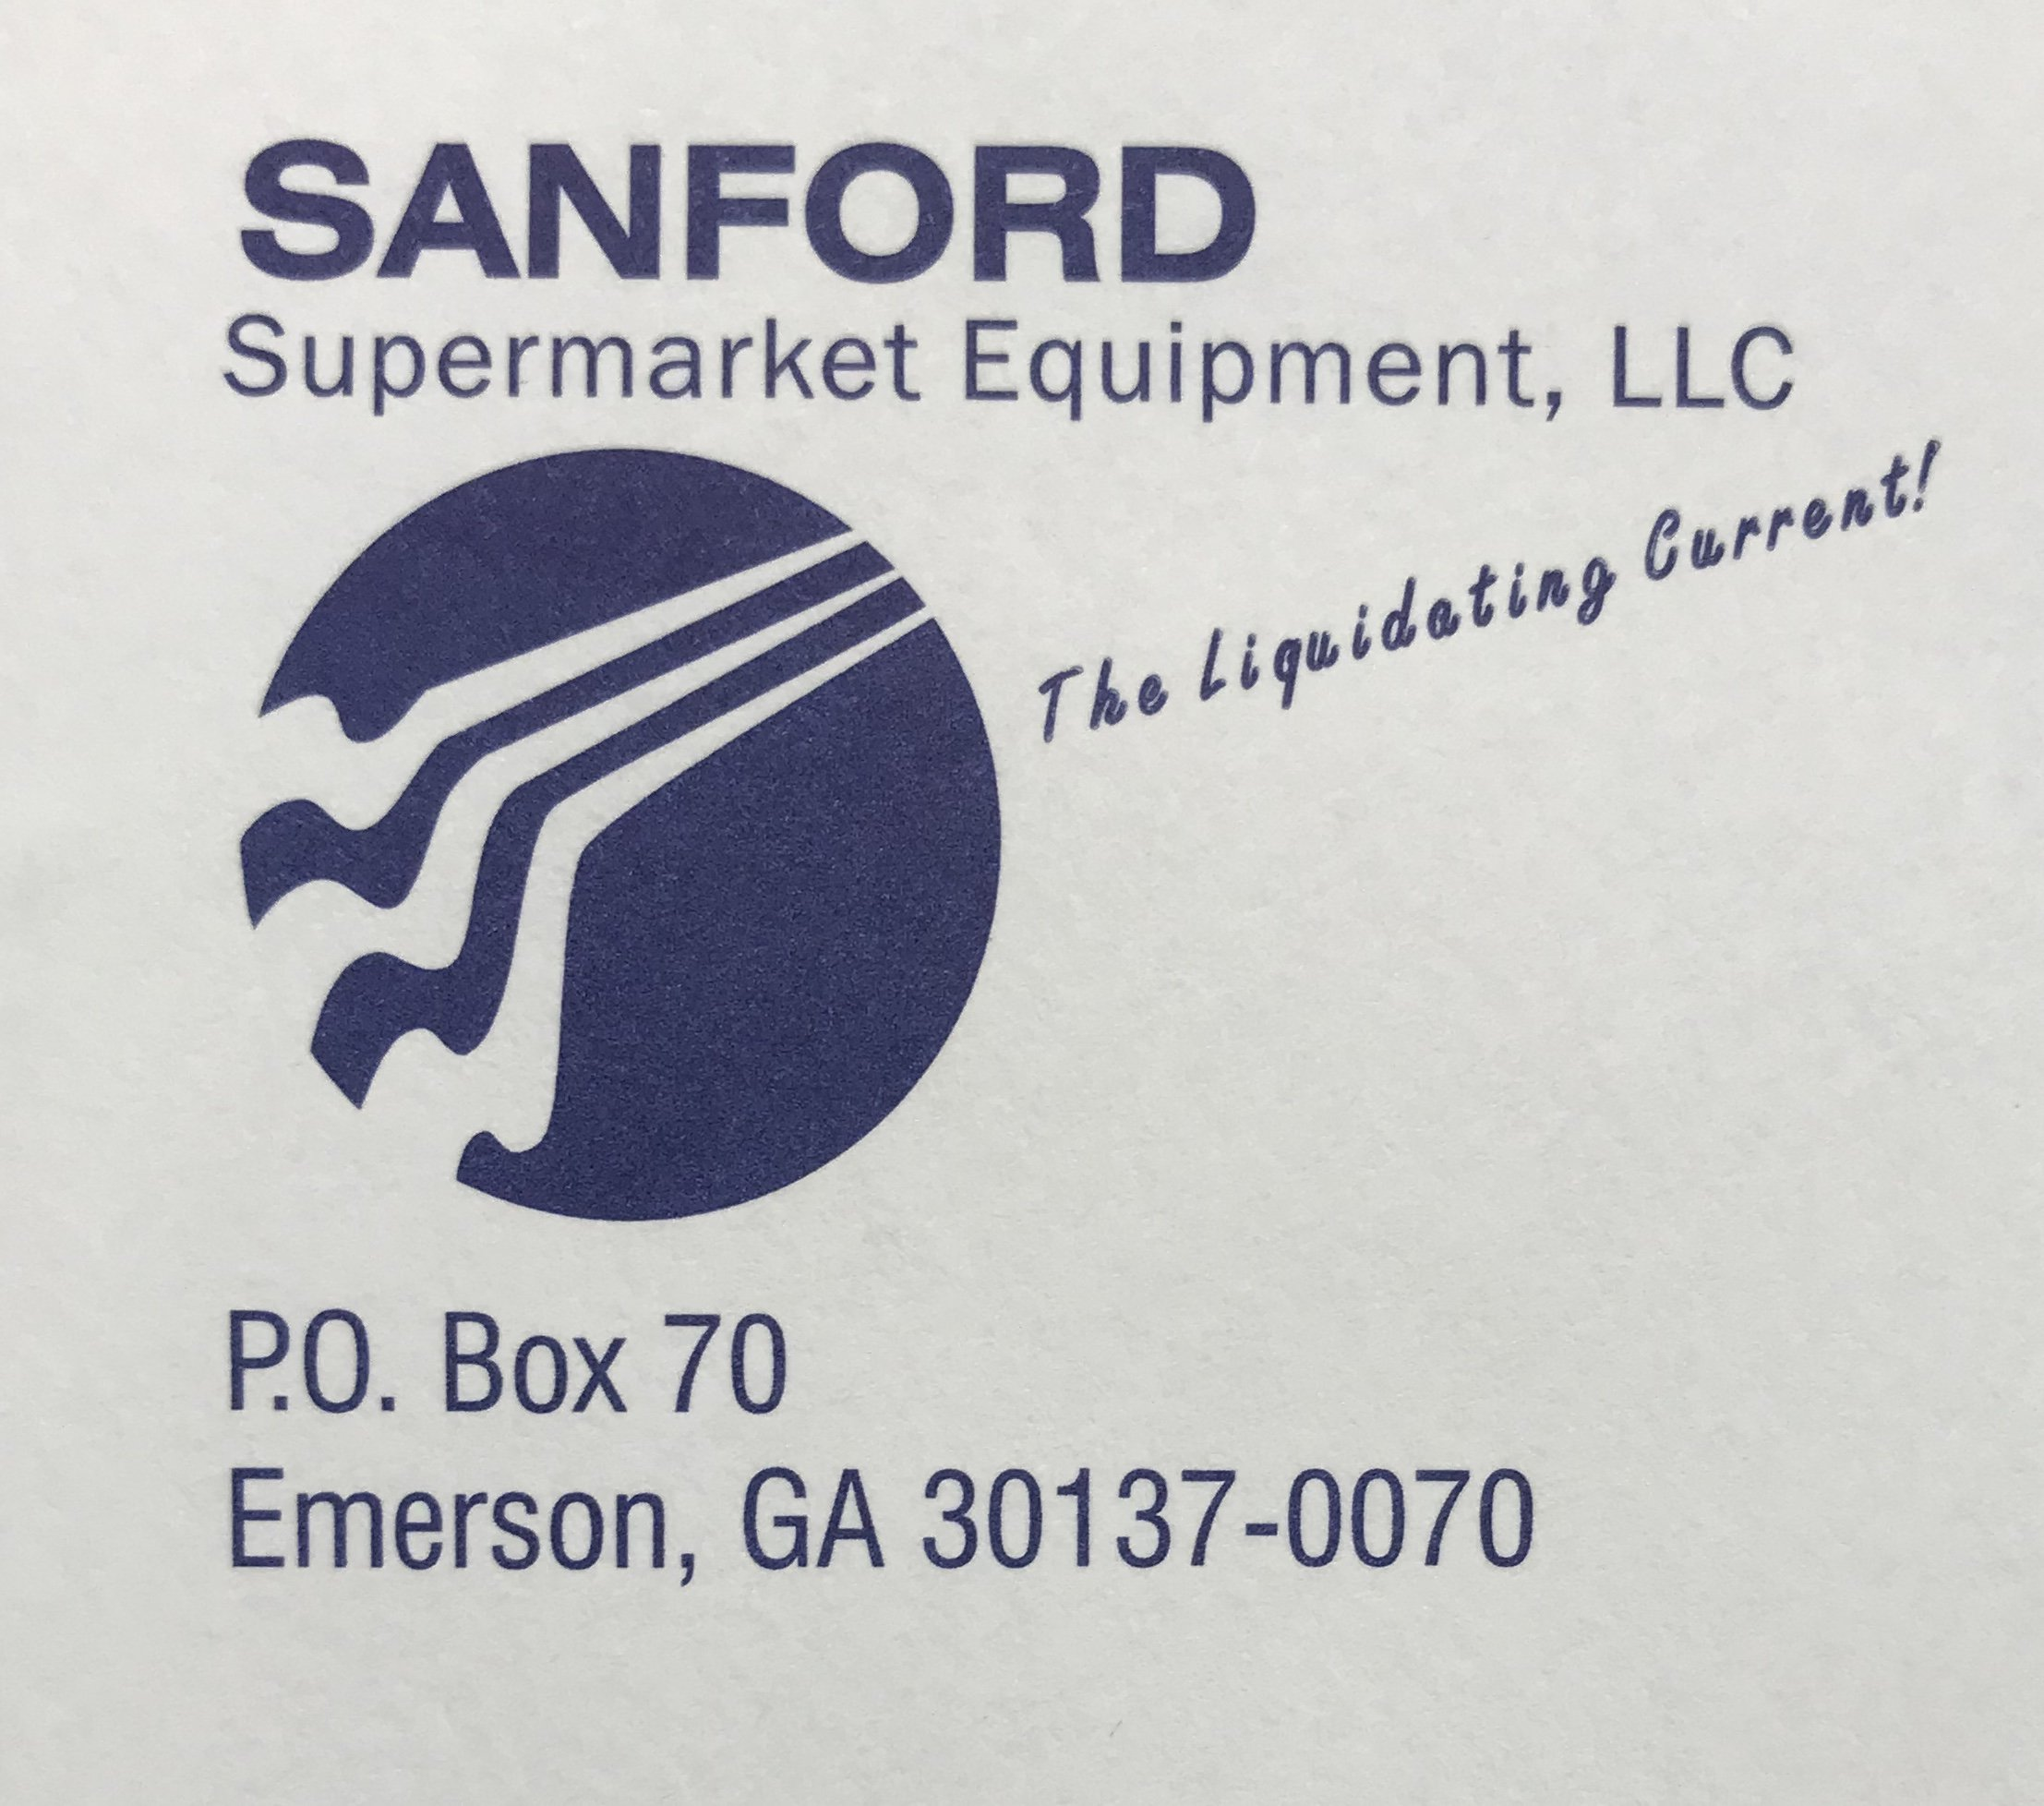 Sanford Supermarket Equipment